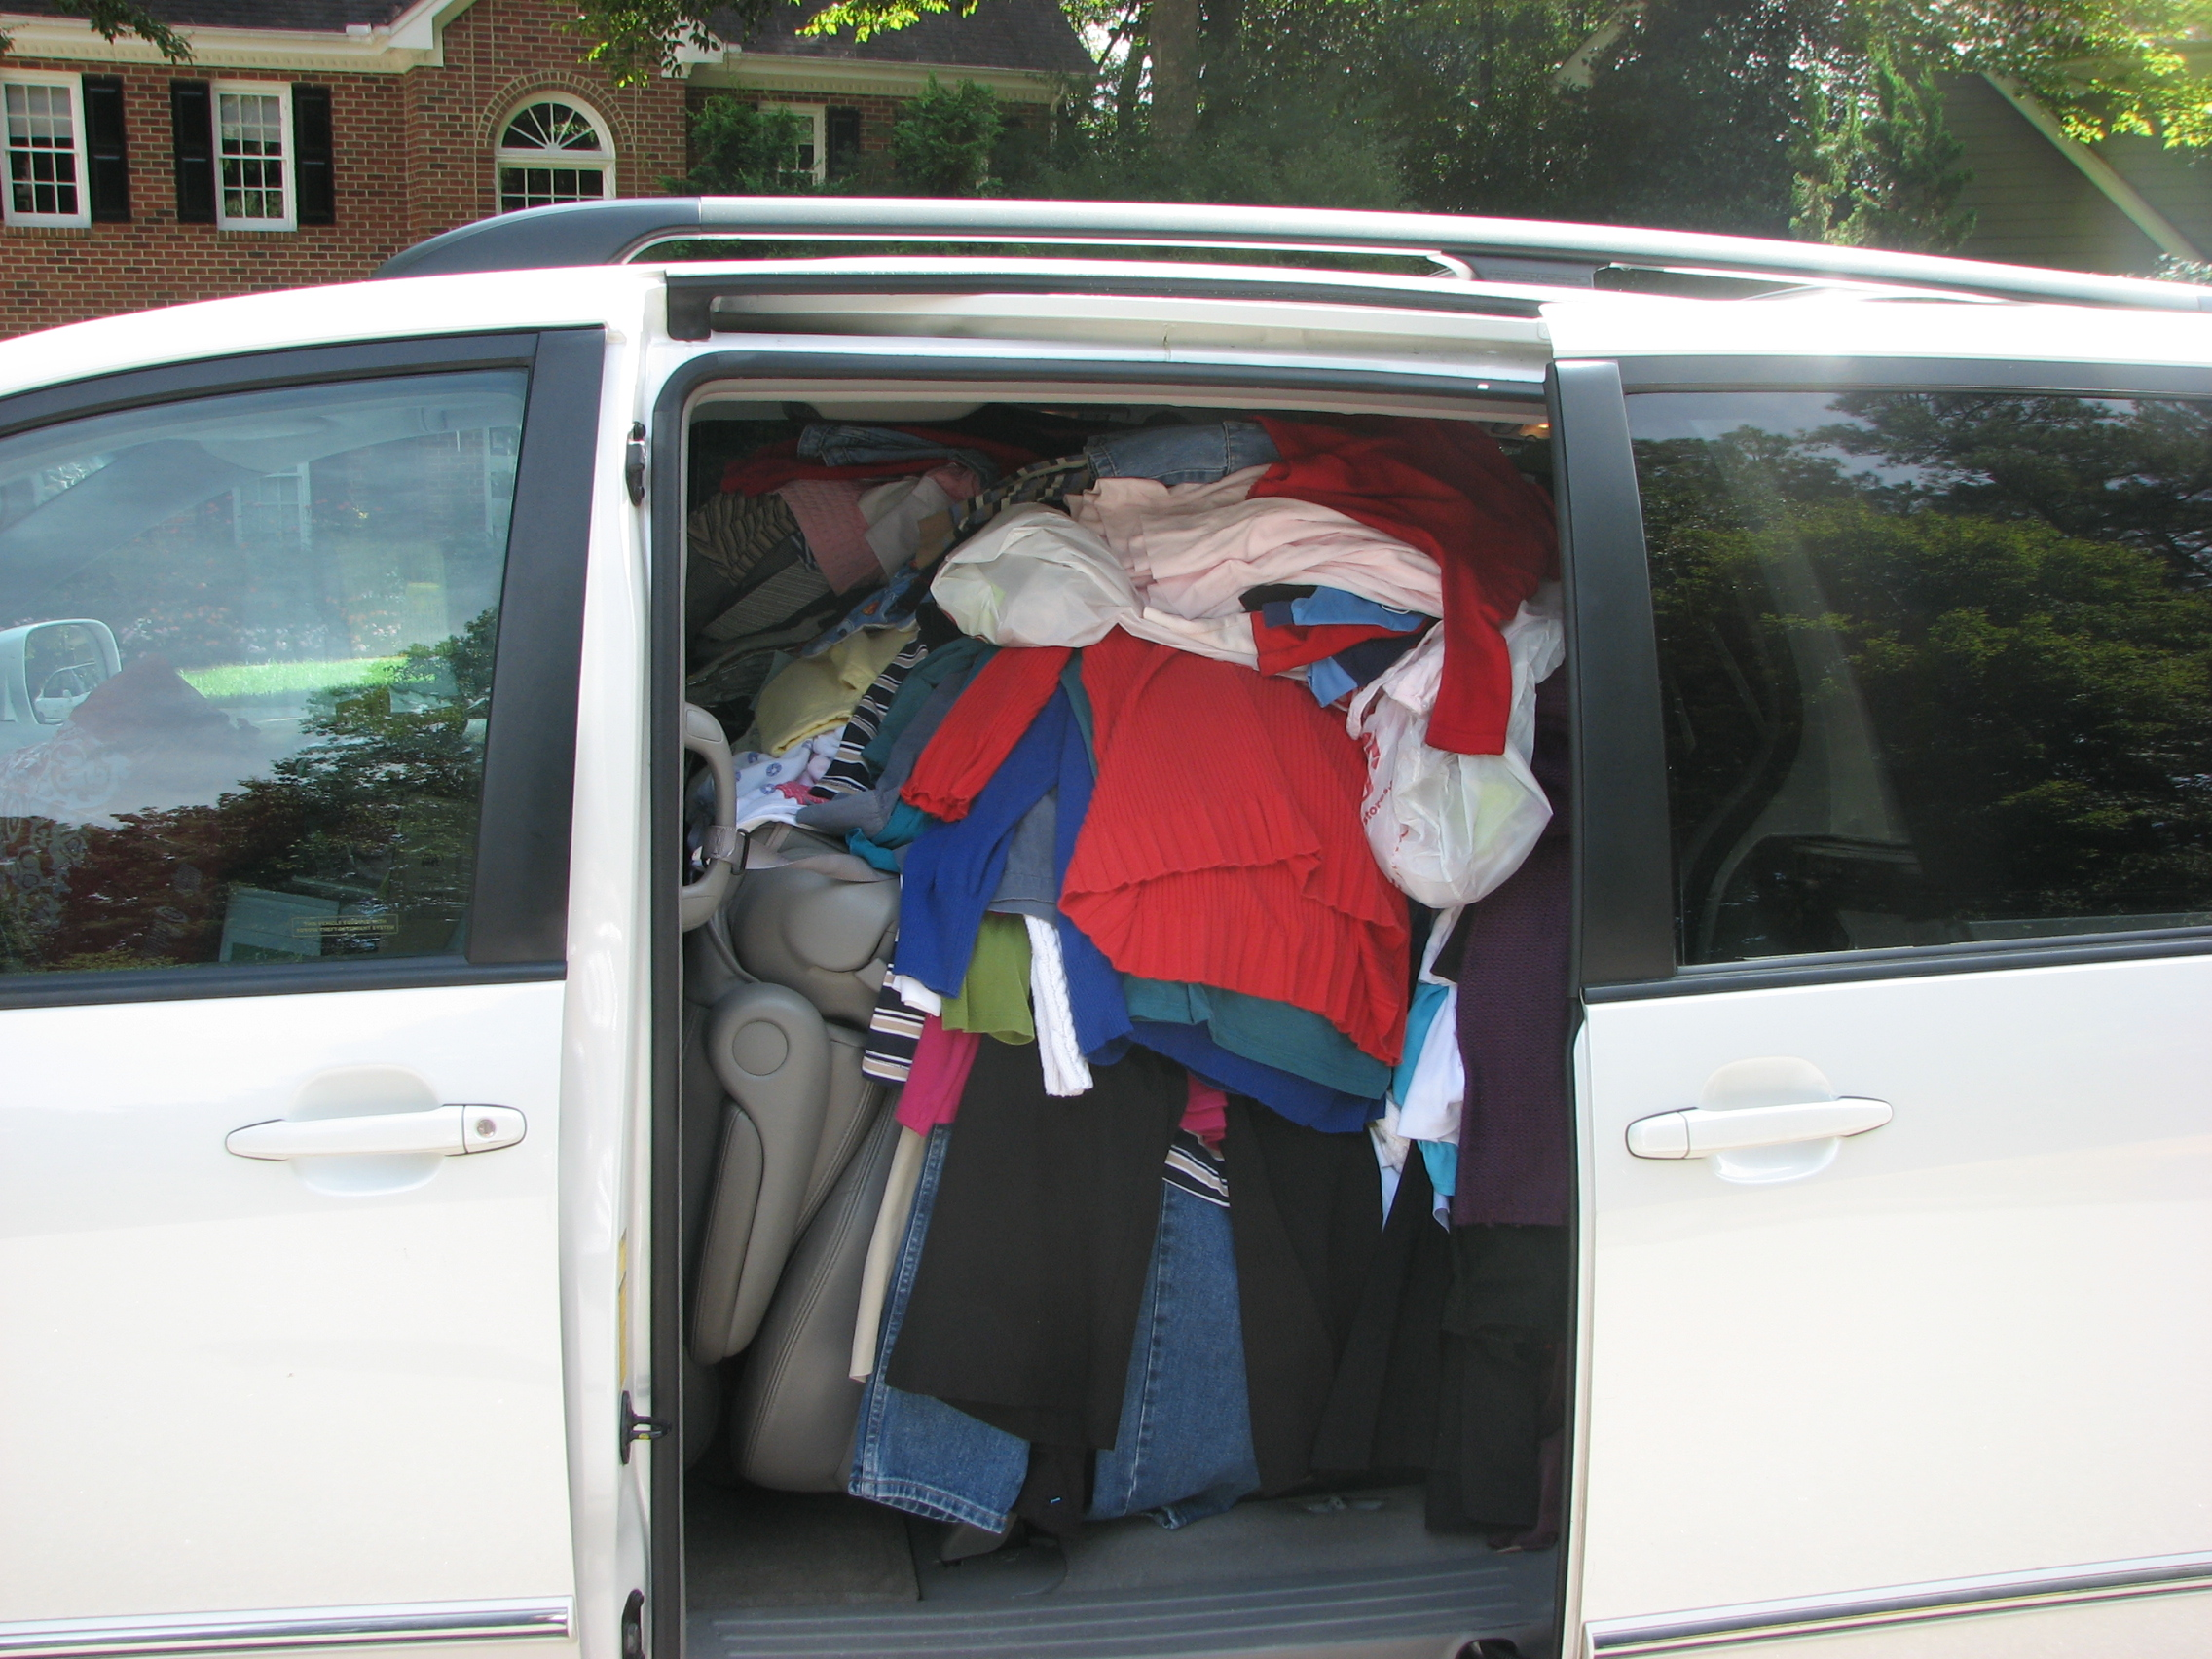 A volunteer stuffs her van full and brings it to CPO when their truck can't fit it all!